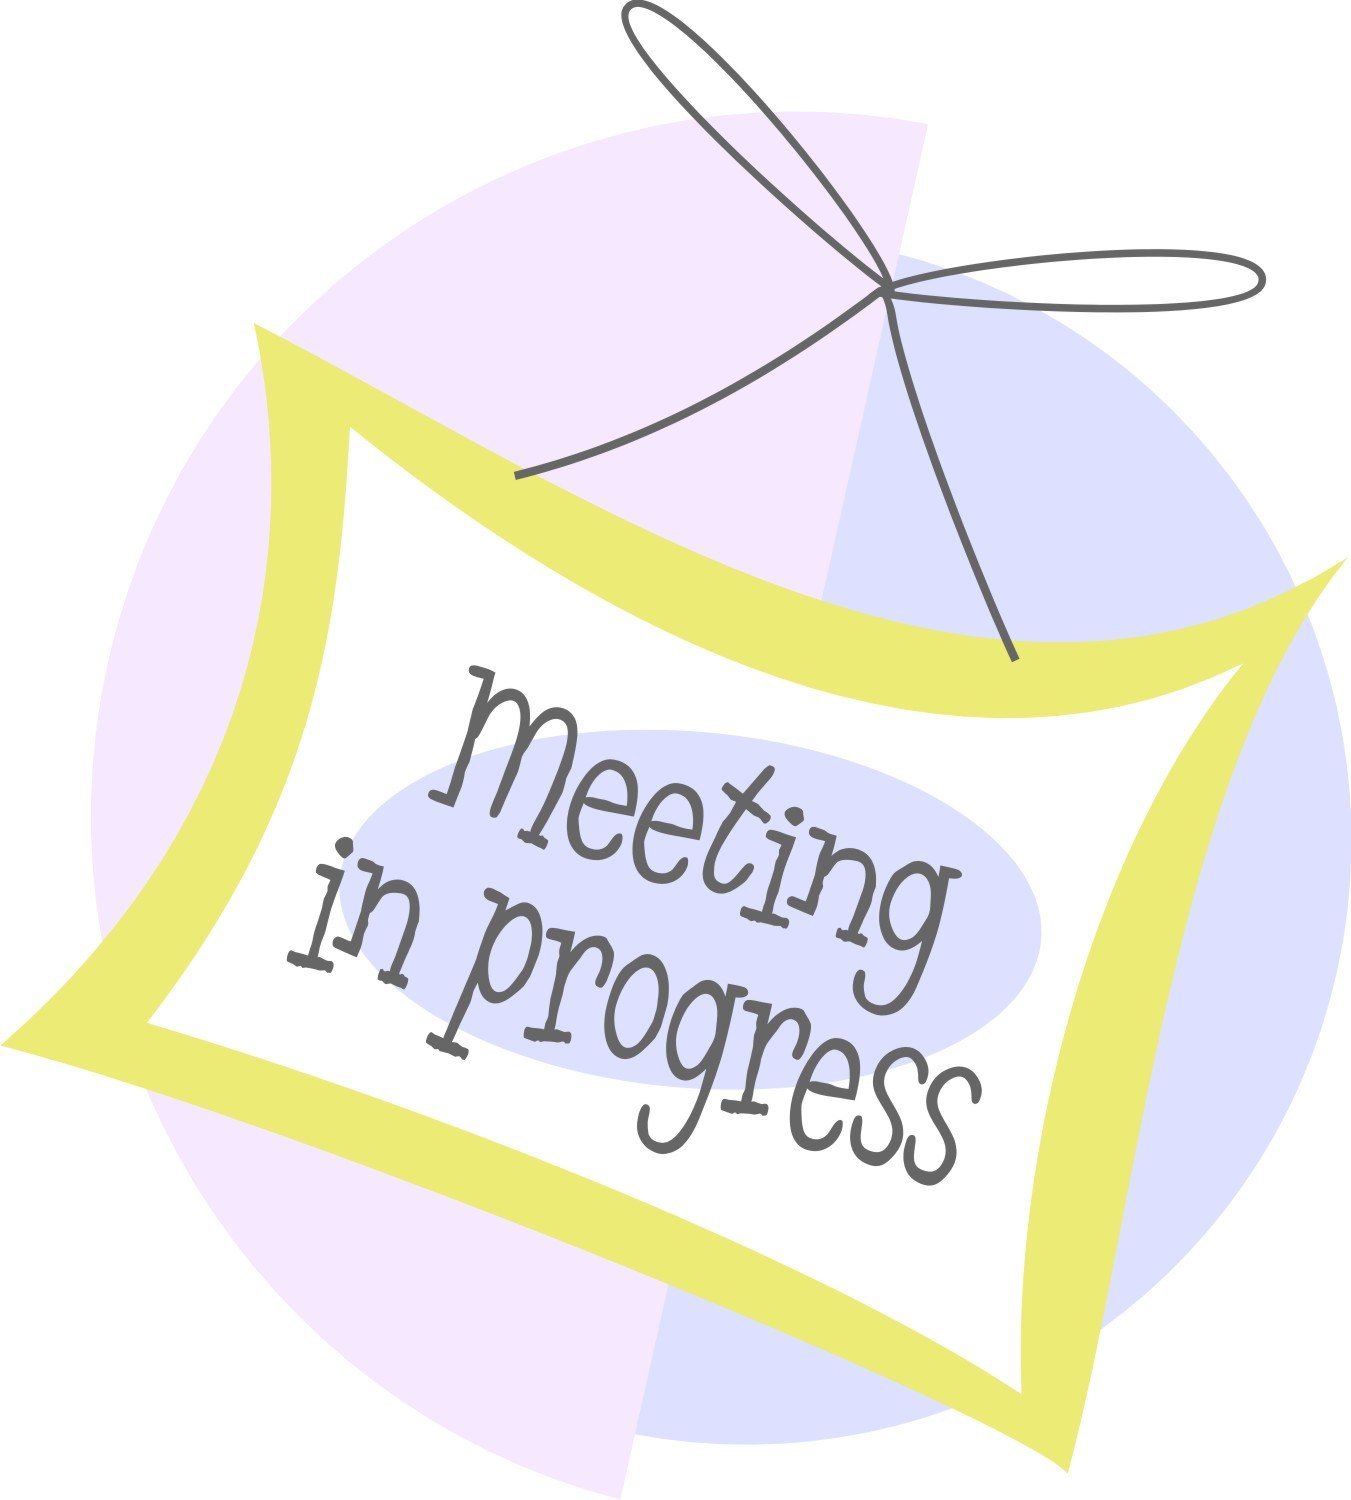 Meeting in progress clipart 3 » Clipart Portal.